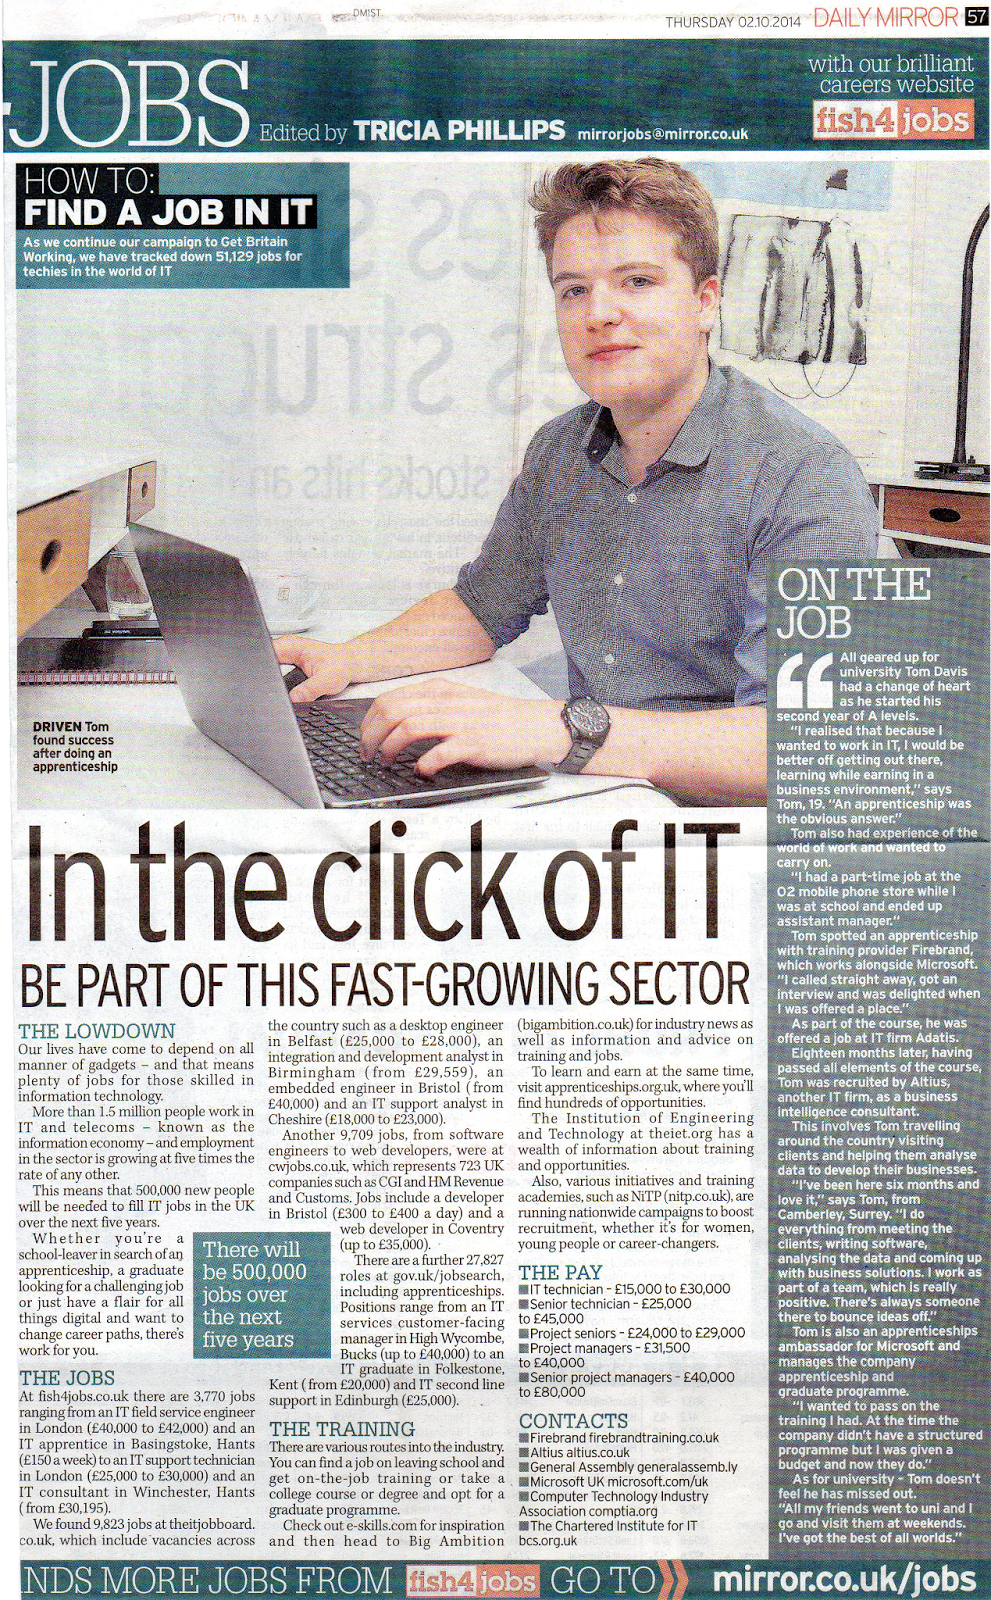 Tom Davis in the Daily Mirror